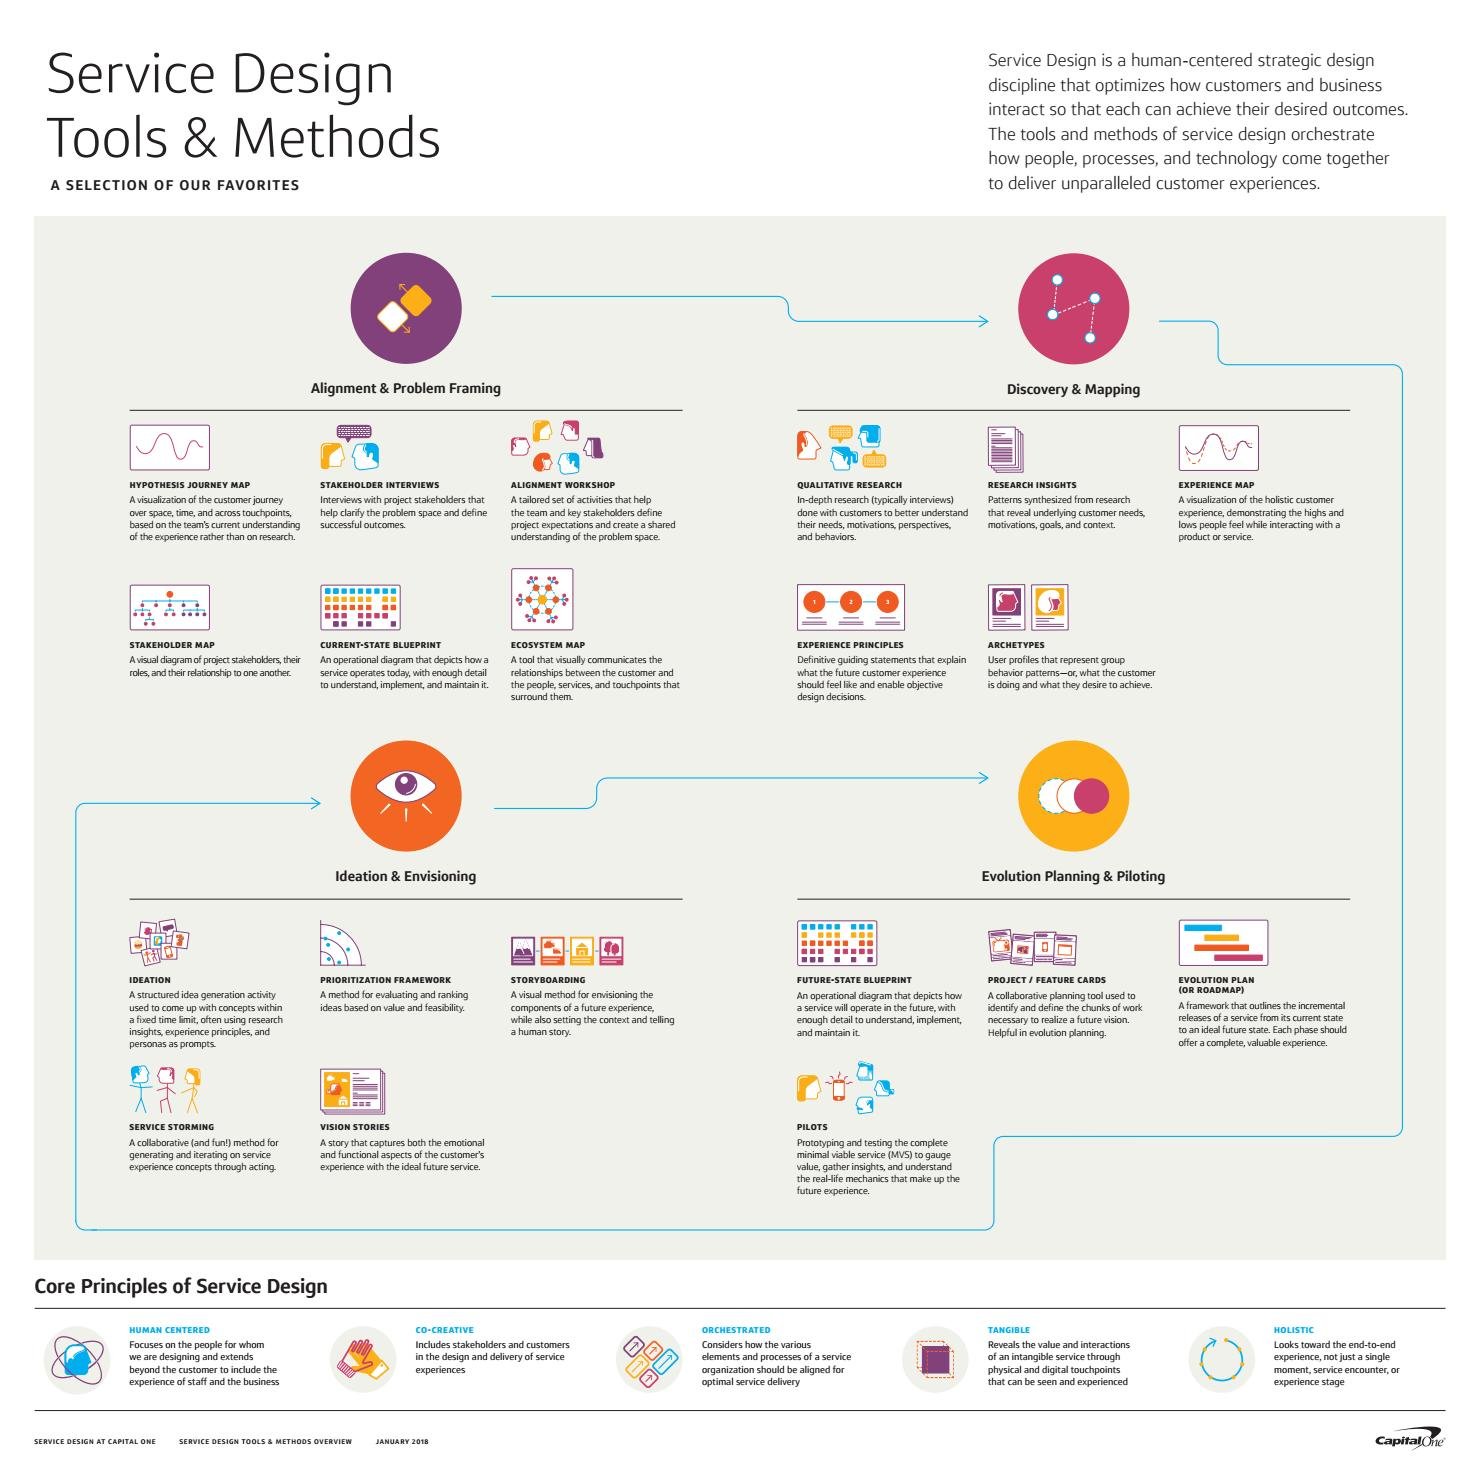 Service design tools and methods overview poster by capital one service design tools and methods overview poster by capital one design issuu malvernweather Choice Image